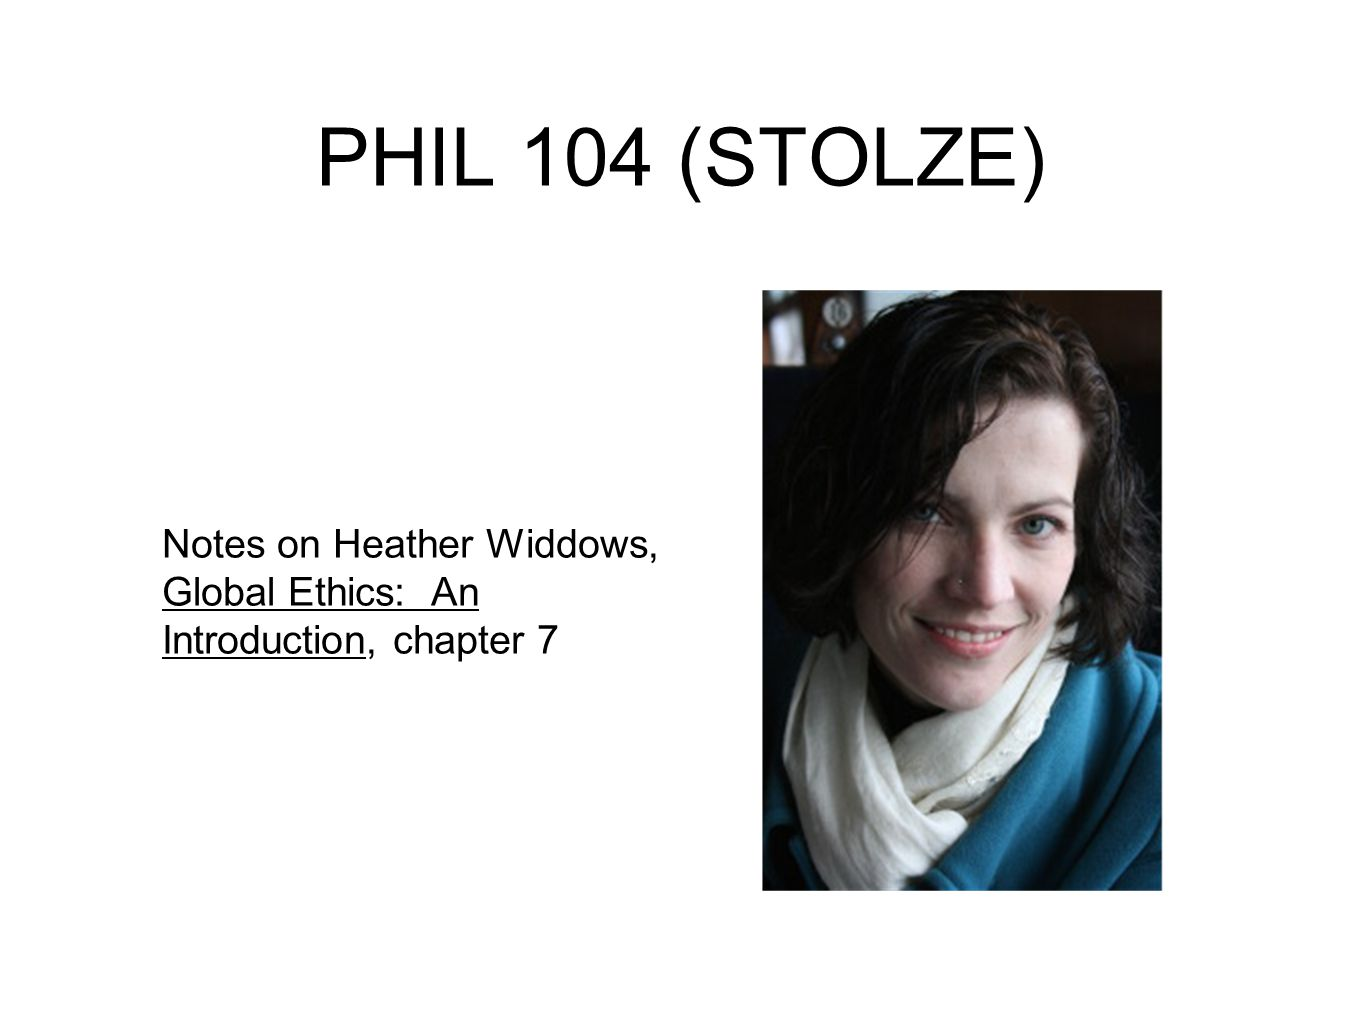 PHIL 104 (STOLZE) Notes on Heather Widdows, Global Ethics: An Introduction, chapter 7